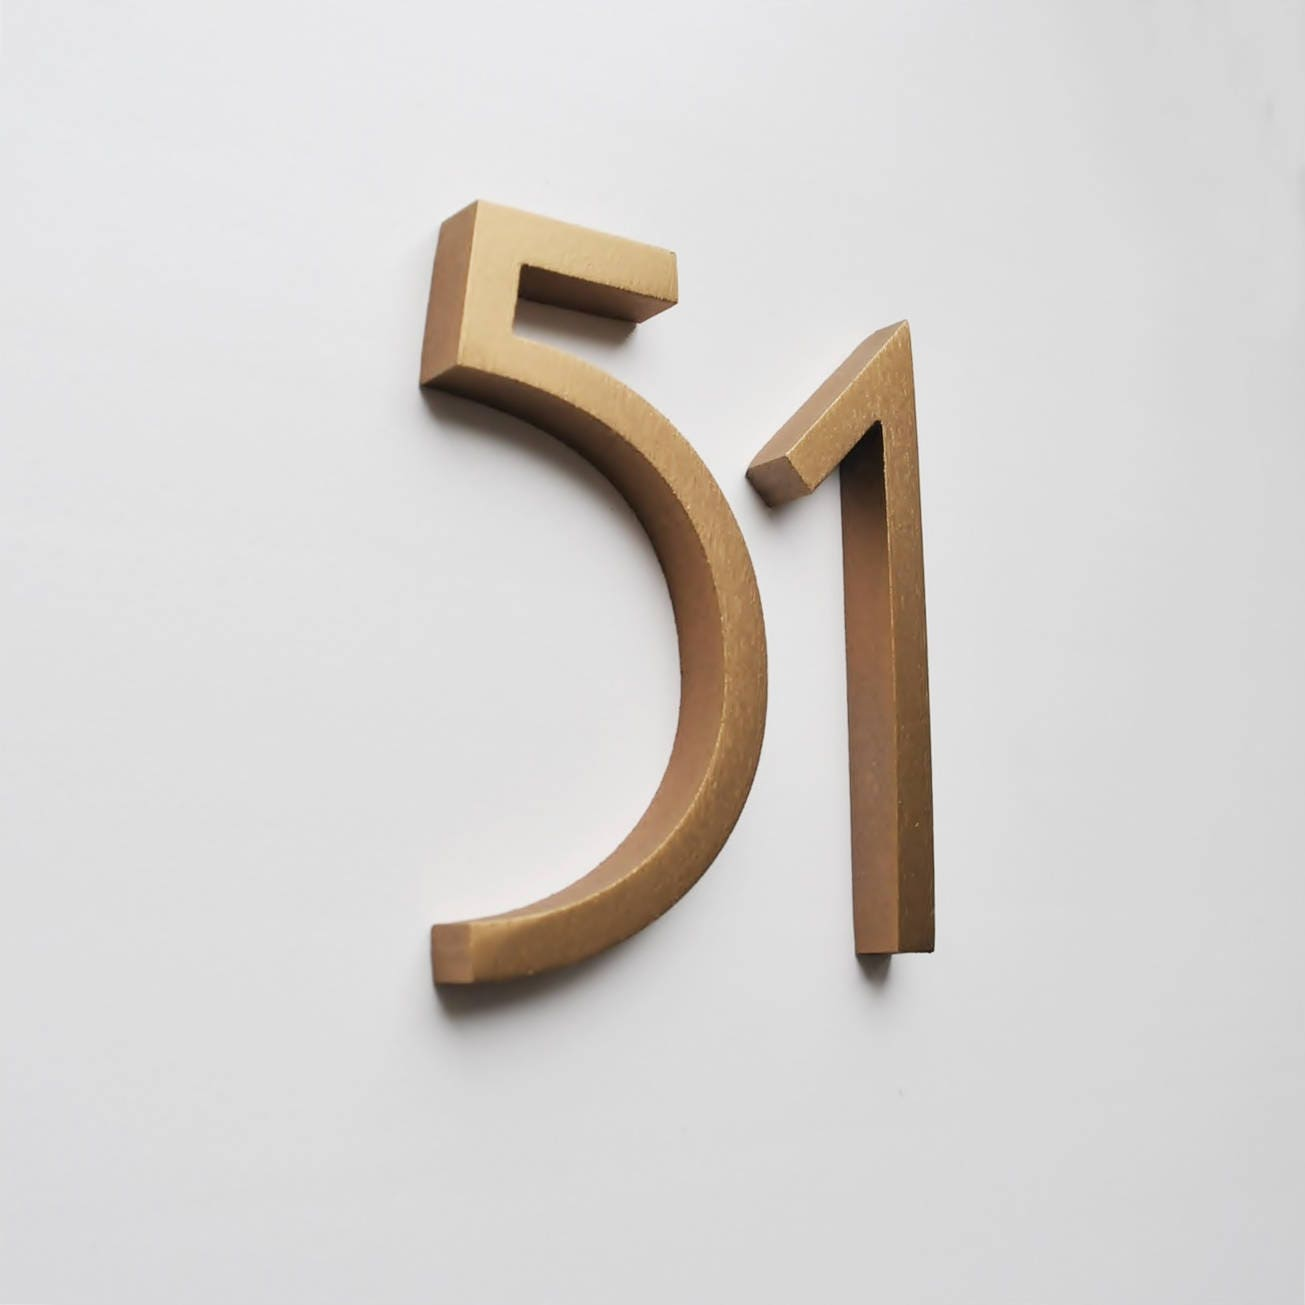 Aluminium Numbers 4inch (10cm) Copper, Gold, Black Colors Metal House  Numbers And